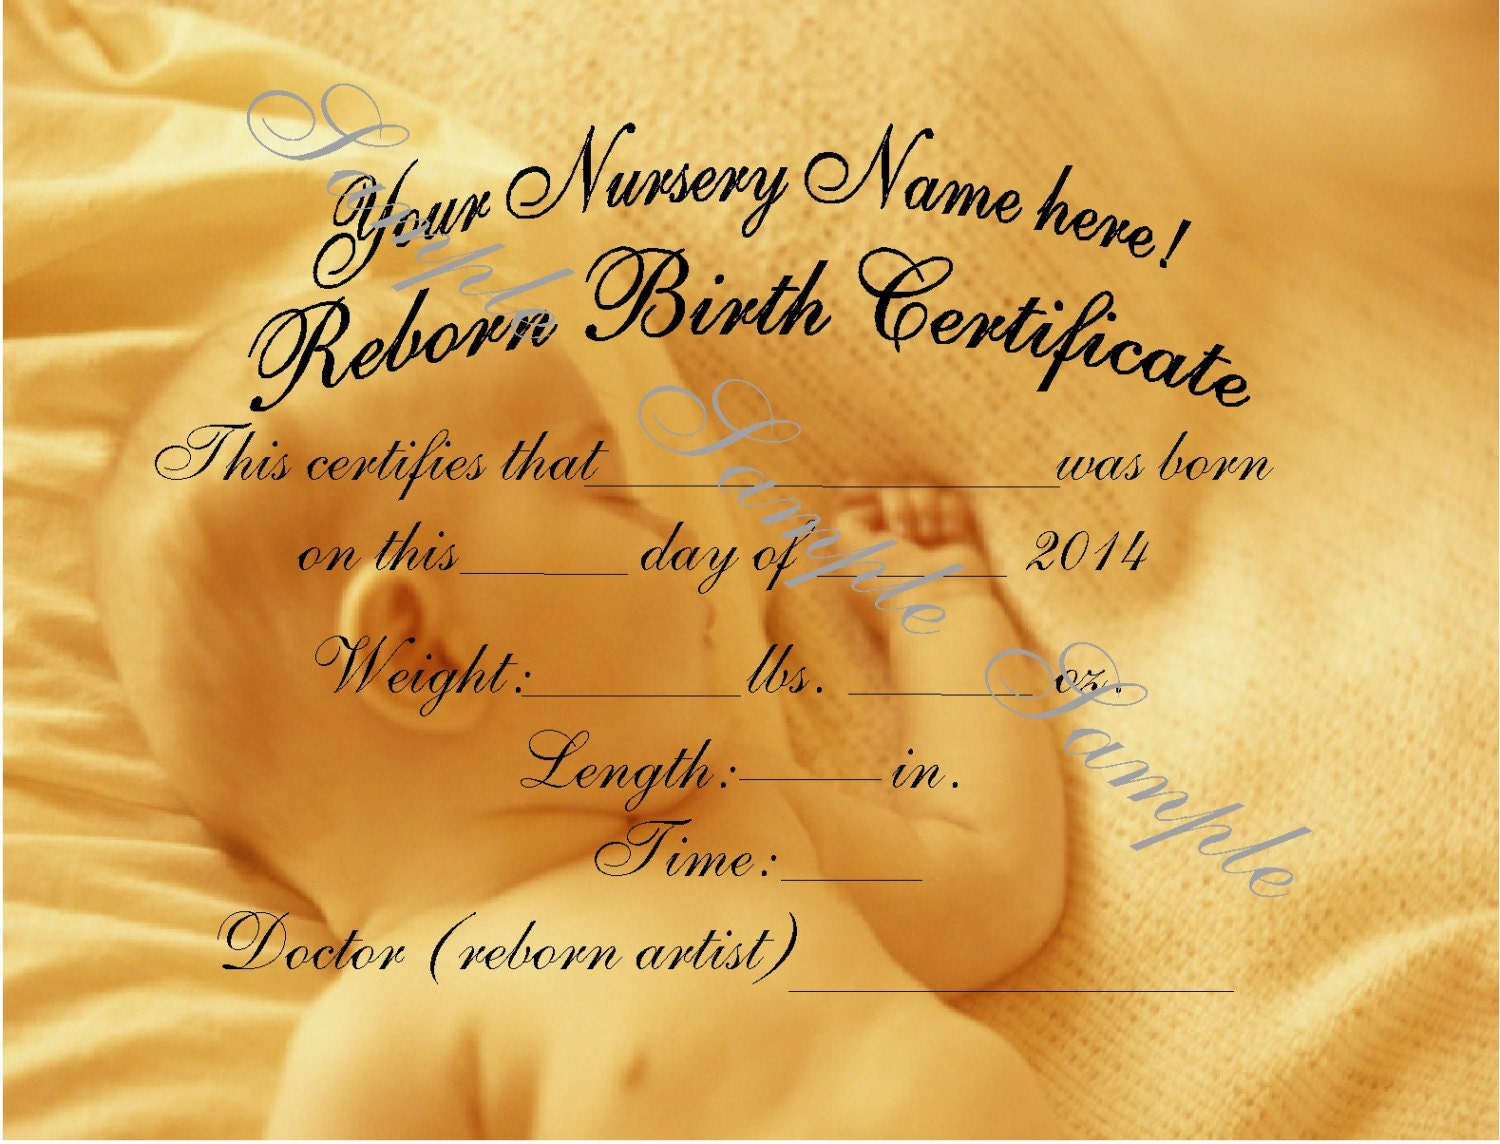 Reborn birth certificates your custom nursery name 5 request a custom order and have something made just for you aiddatafo Image collections